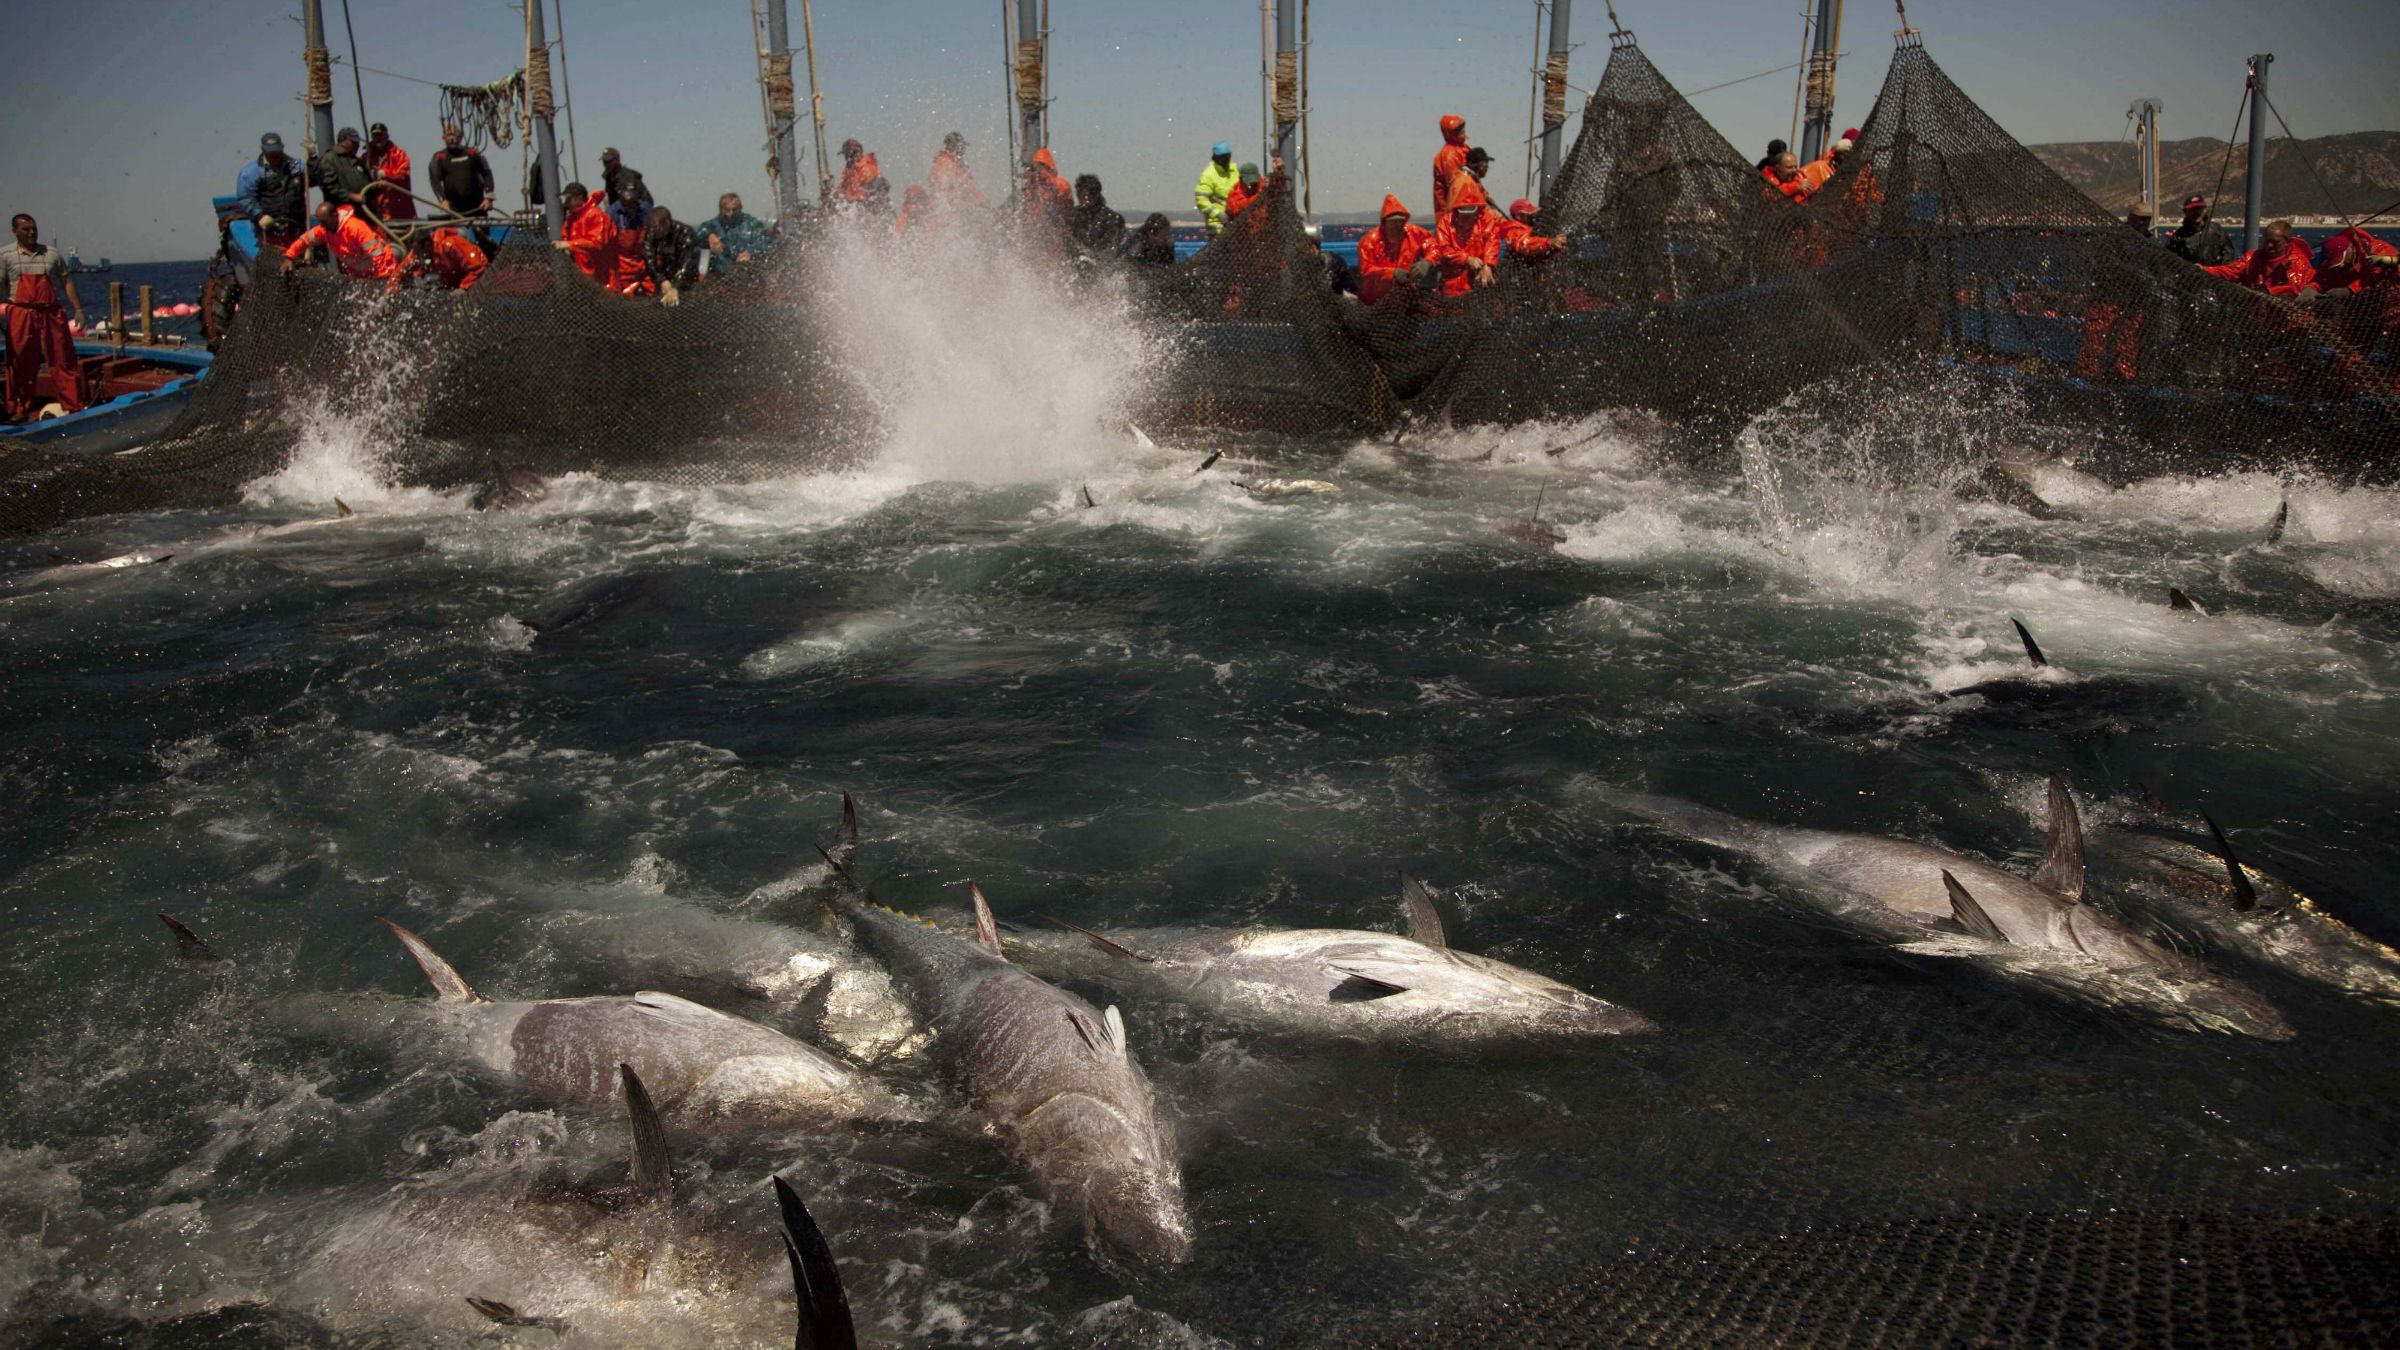 In this April 27, 2011 file photo, Atlantic bluefin tuna are surrounded by fishing nets during the opening of the season for tuna fishing off the coast of Barbate, Cadiz province, southern Spain. A scientific study on Tuesday, Oct. 18, 2011 said over twice as much of the rare eastern Atlantic bluefin tuna in the Mediterranean is traded than catch quotas allow for, further threatening the survival of the dinnertime favorite at sushi bars across the globe.